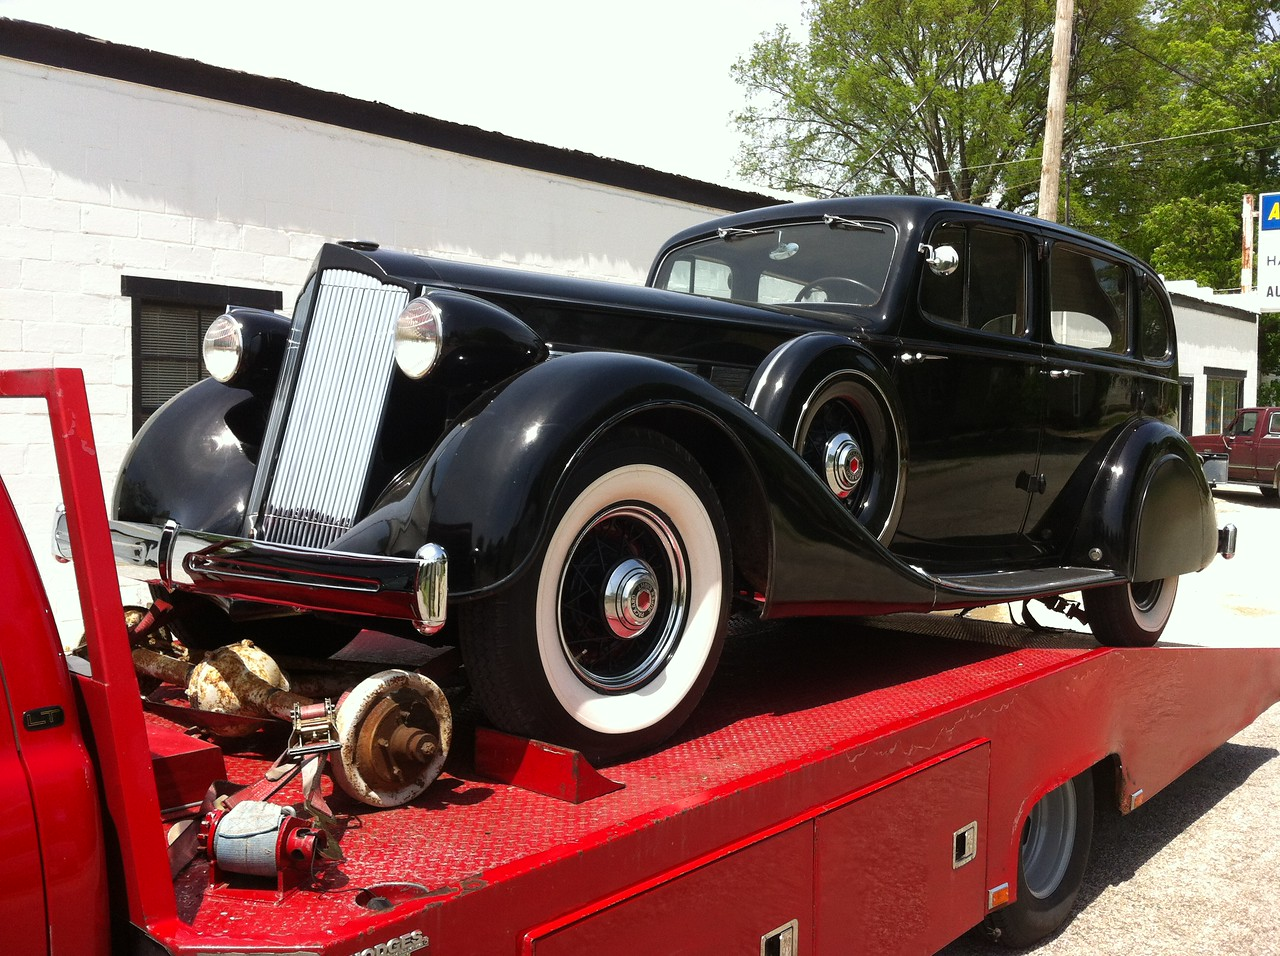 1936 Packard Fastback Touring Sedan (New Harmony, Indiana to Westmoreland, Tennessee)